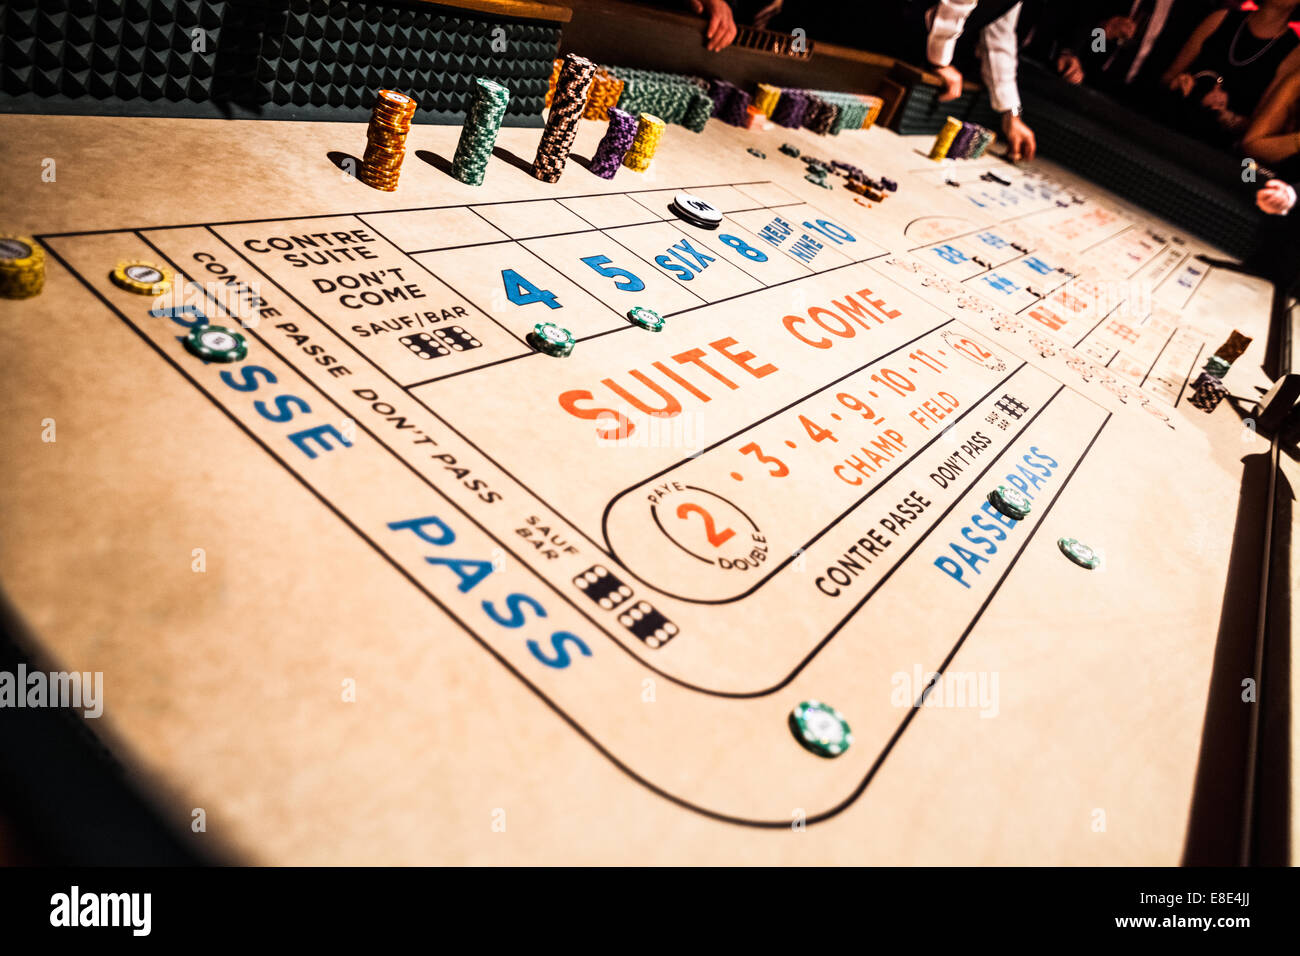 Craps Table, Chips Piles and People Gambling all Around - Stock Image